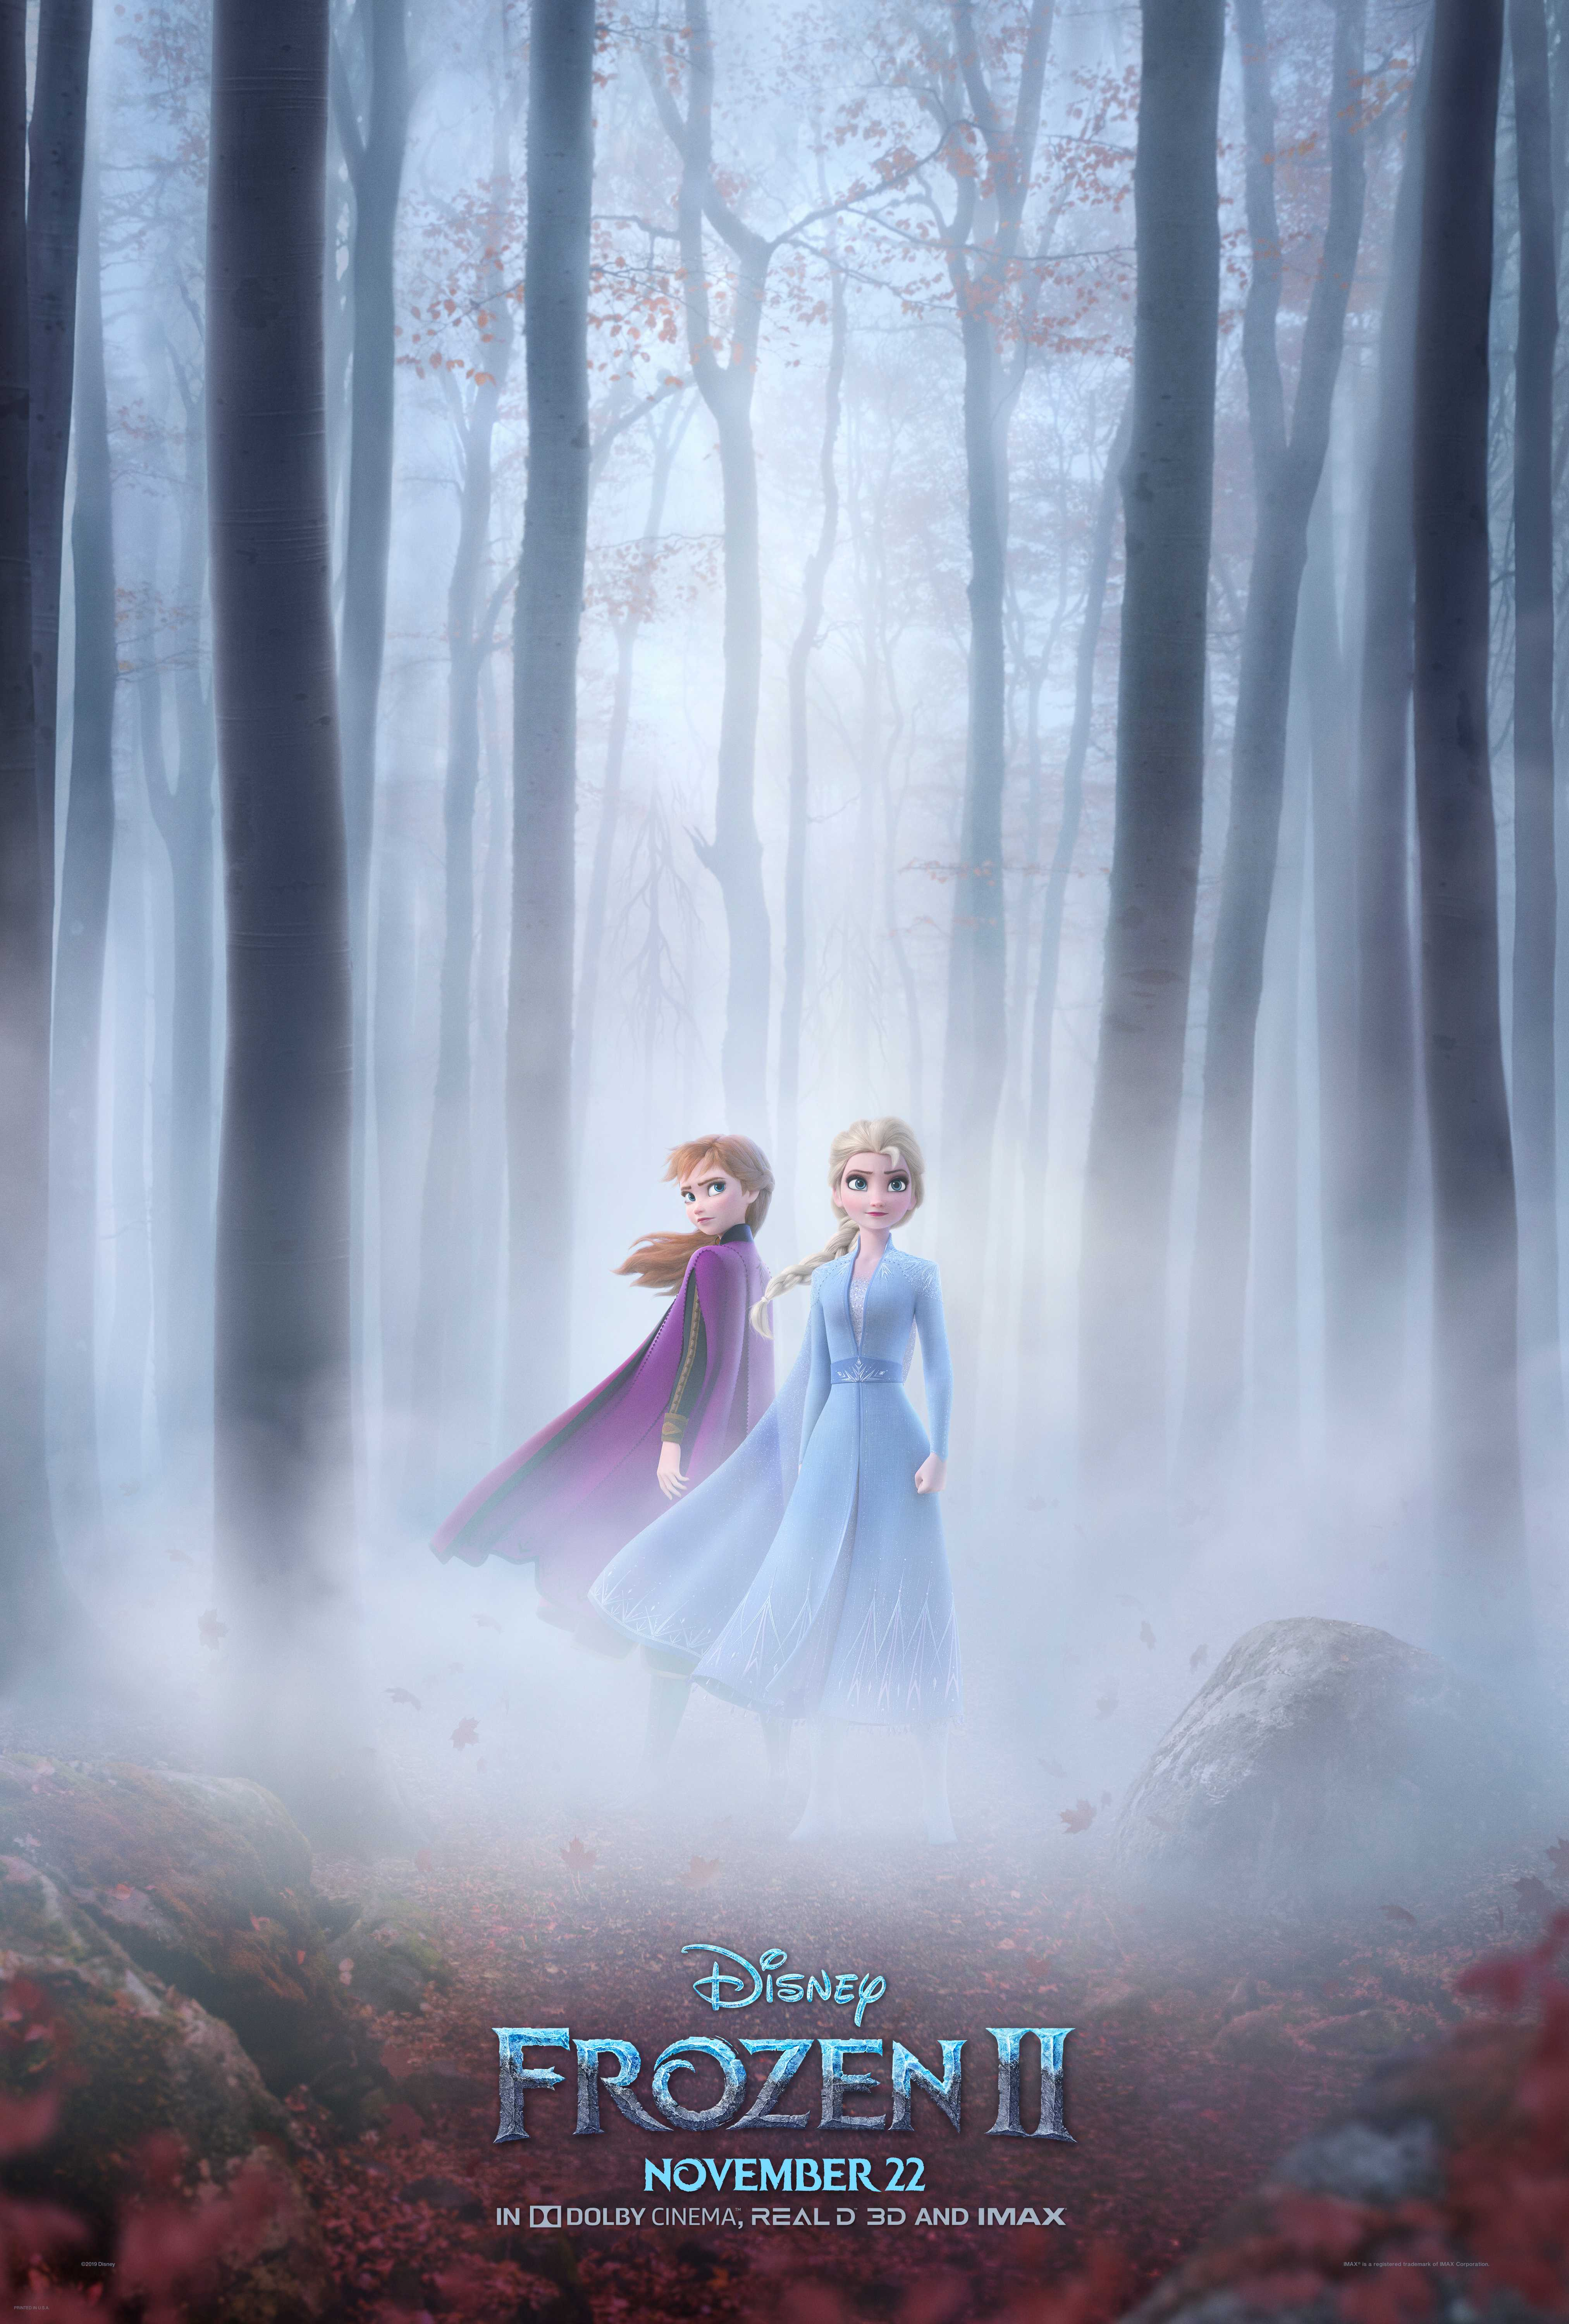 When and where to watch Frozen 2